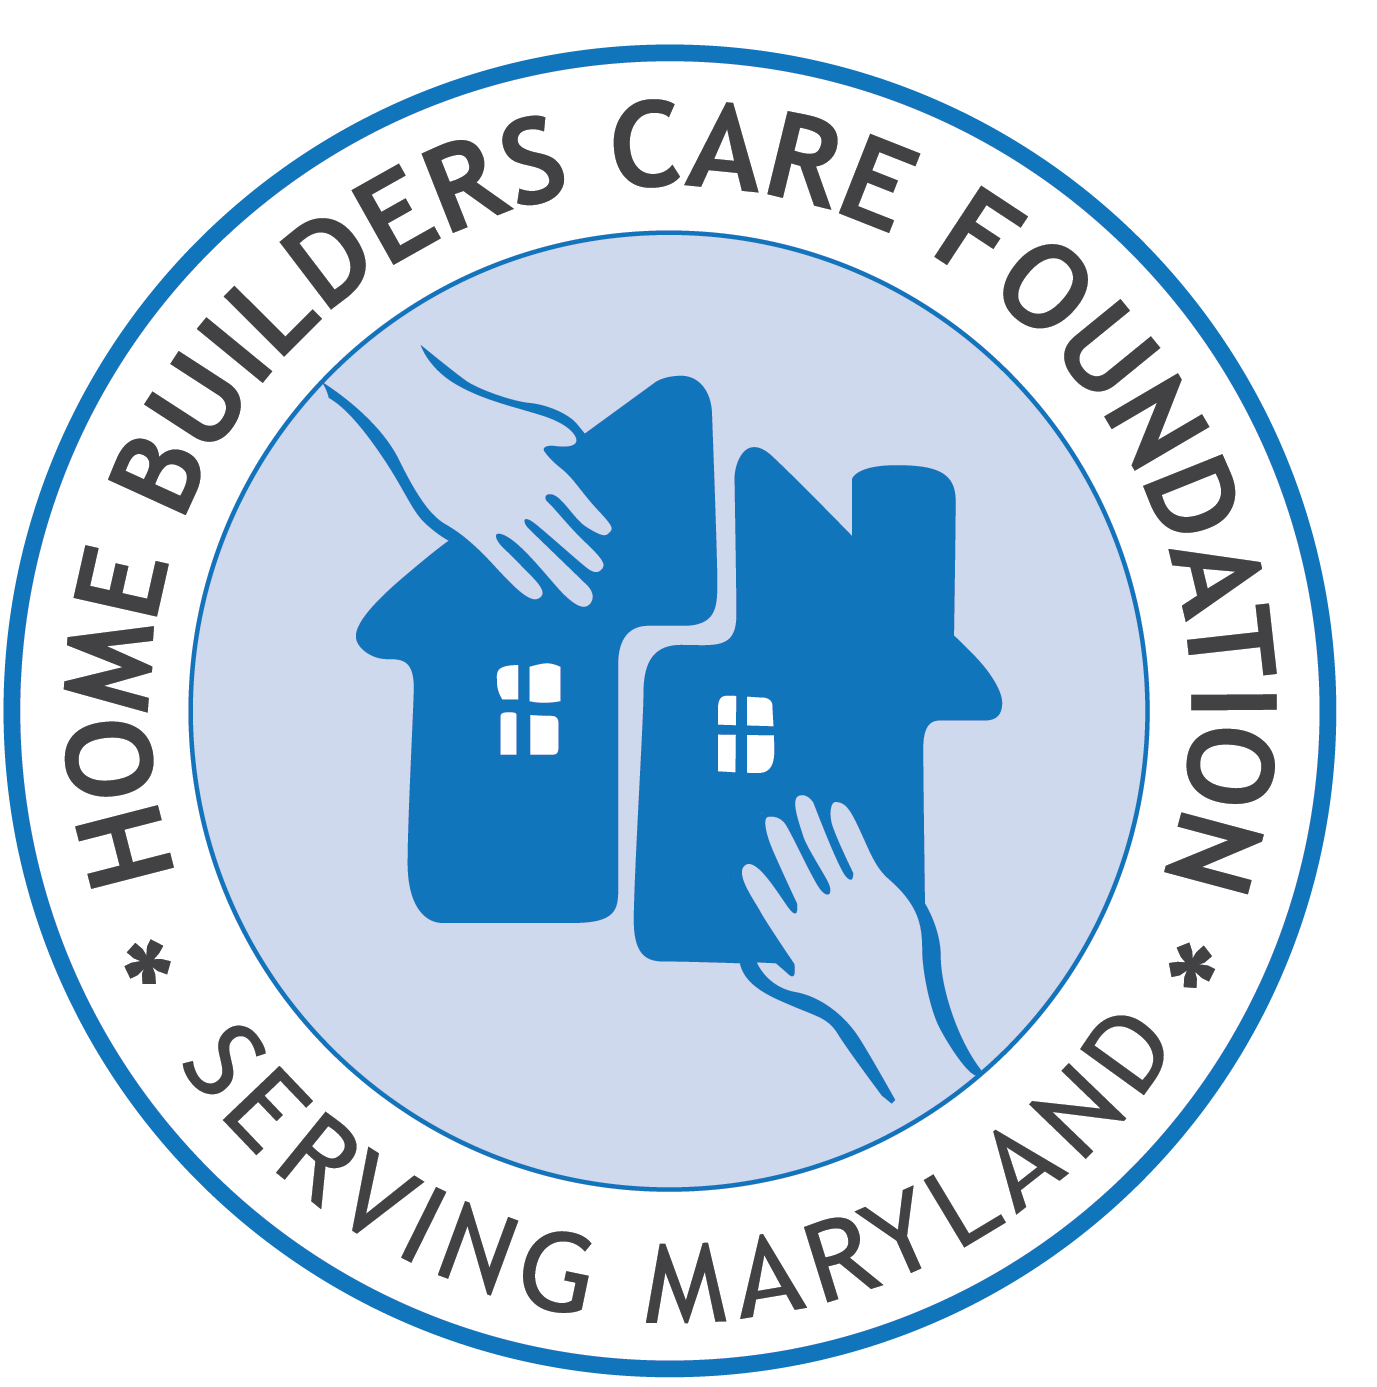 Home Builders Care Foundation, Inc.